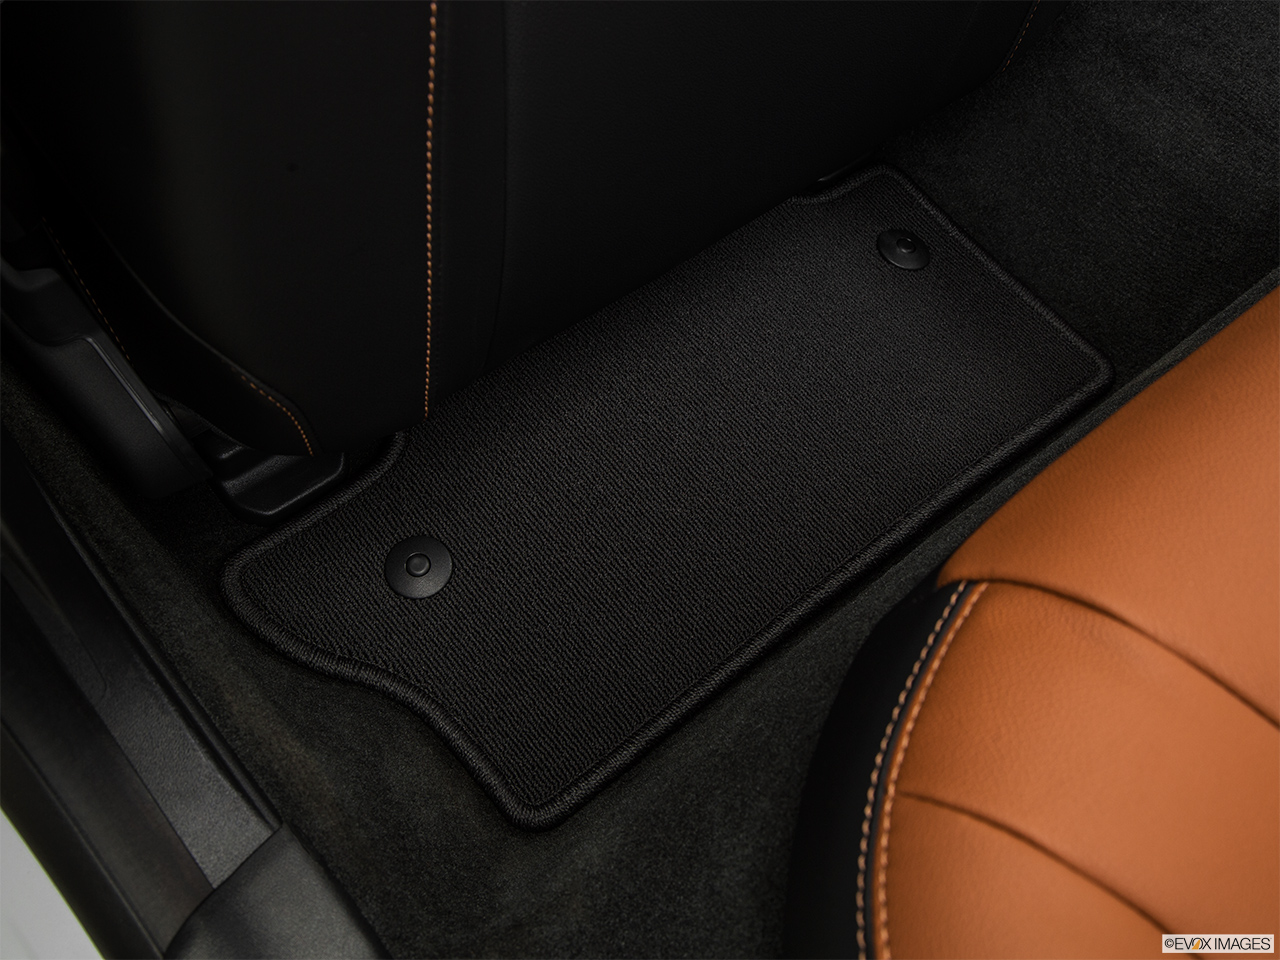 2015 Volvo V60 Cross Country T5 AWD Rear driver's side floor mat. Mid-seat level from outside looking in.